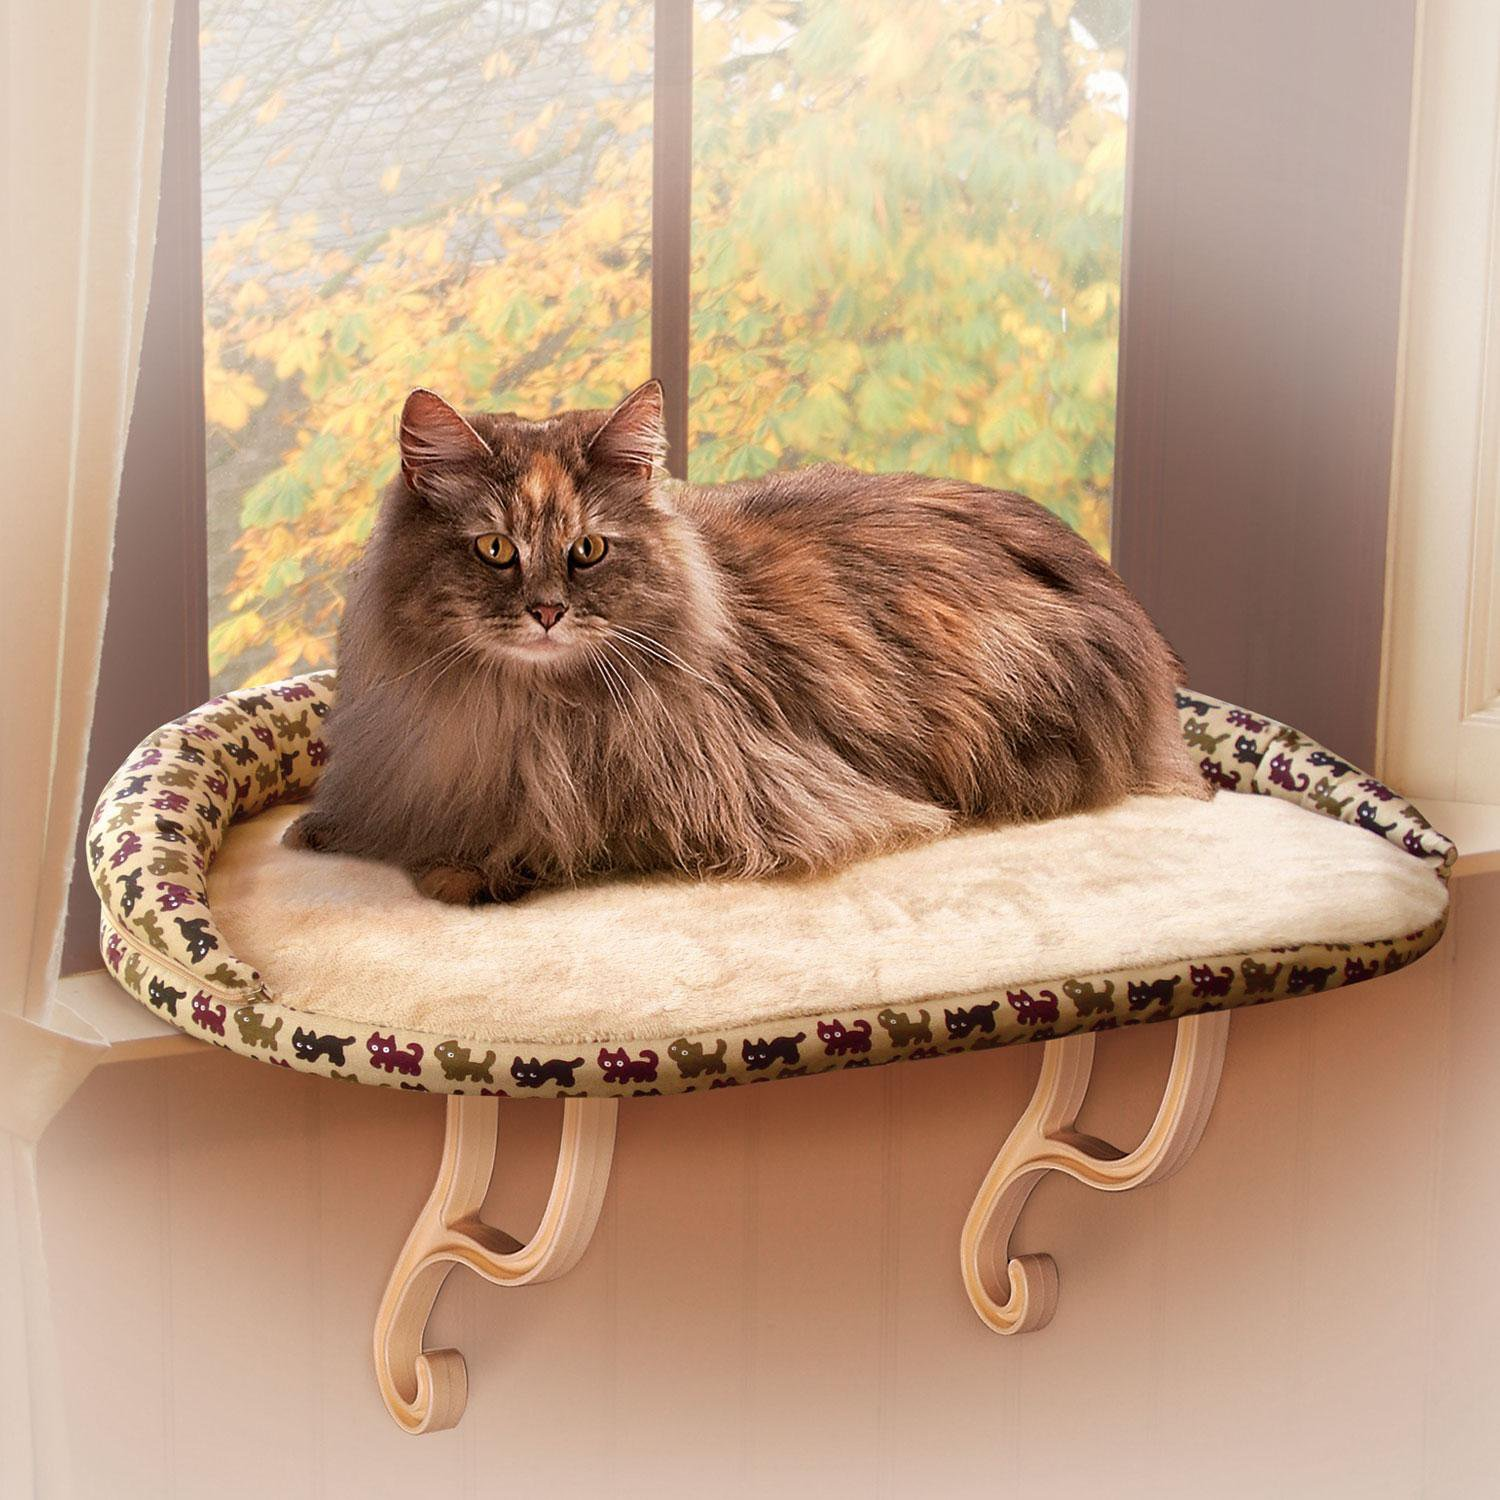 K Amp H Kitty Sill Bolster Deluxe Cat Window Perch Petco